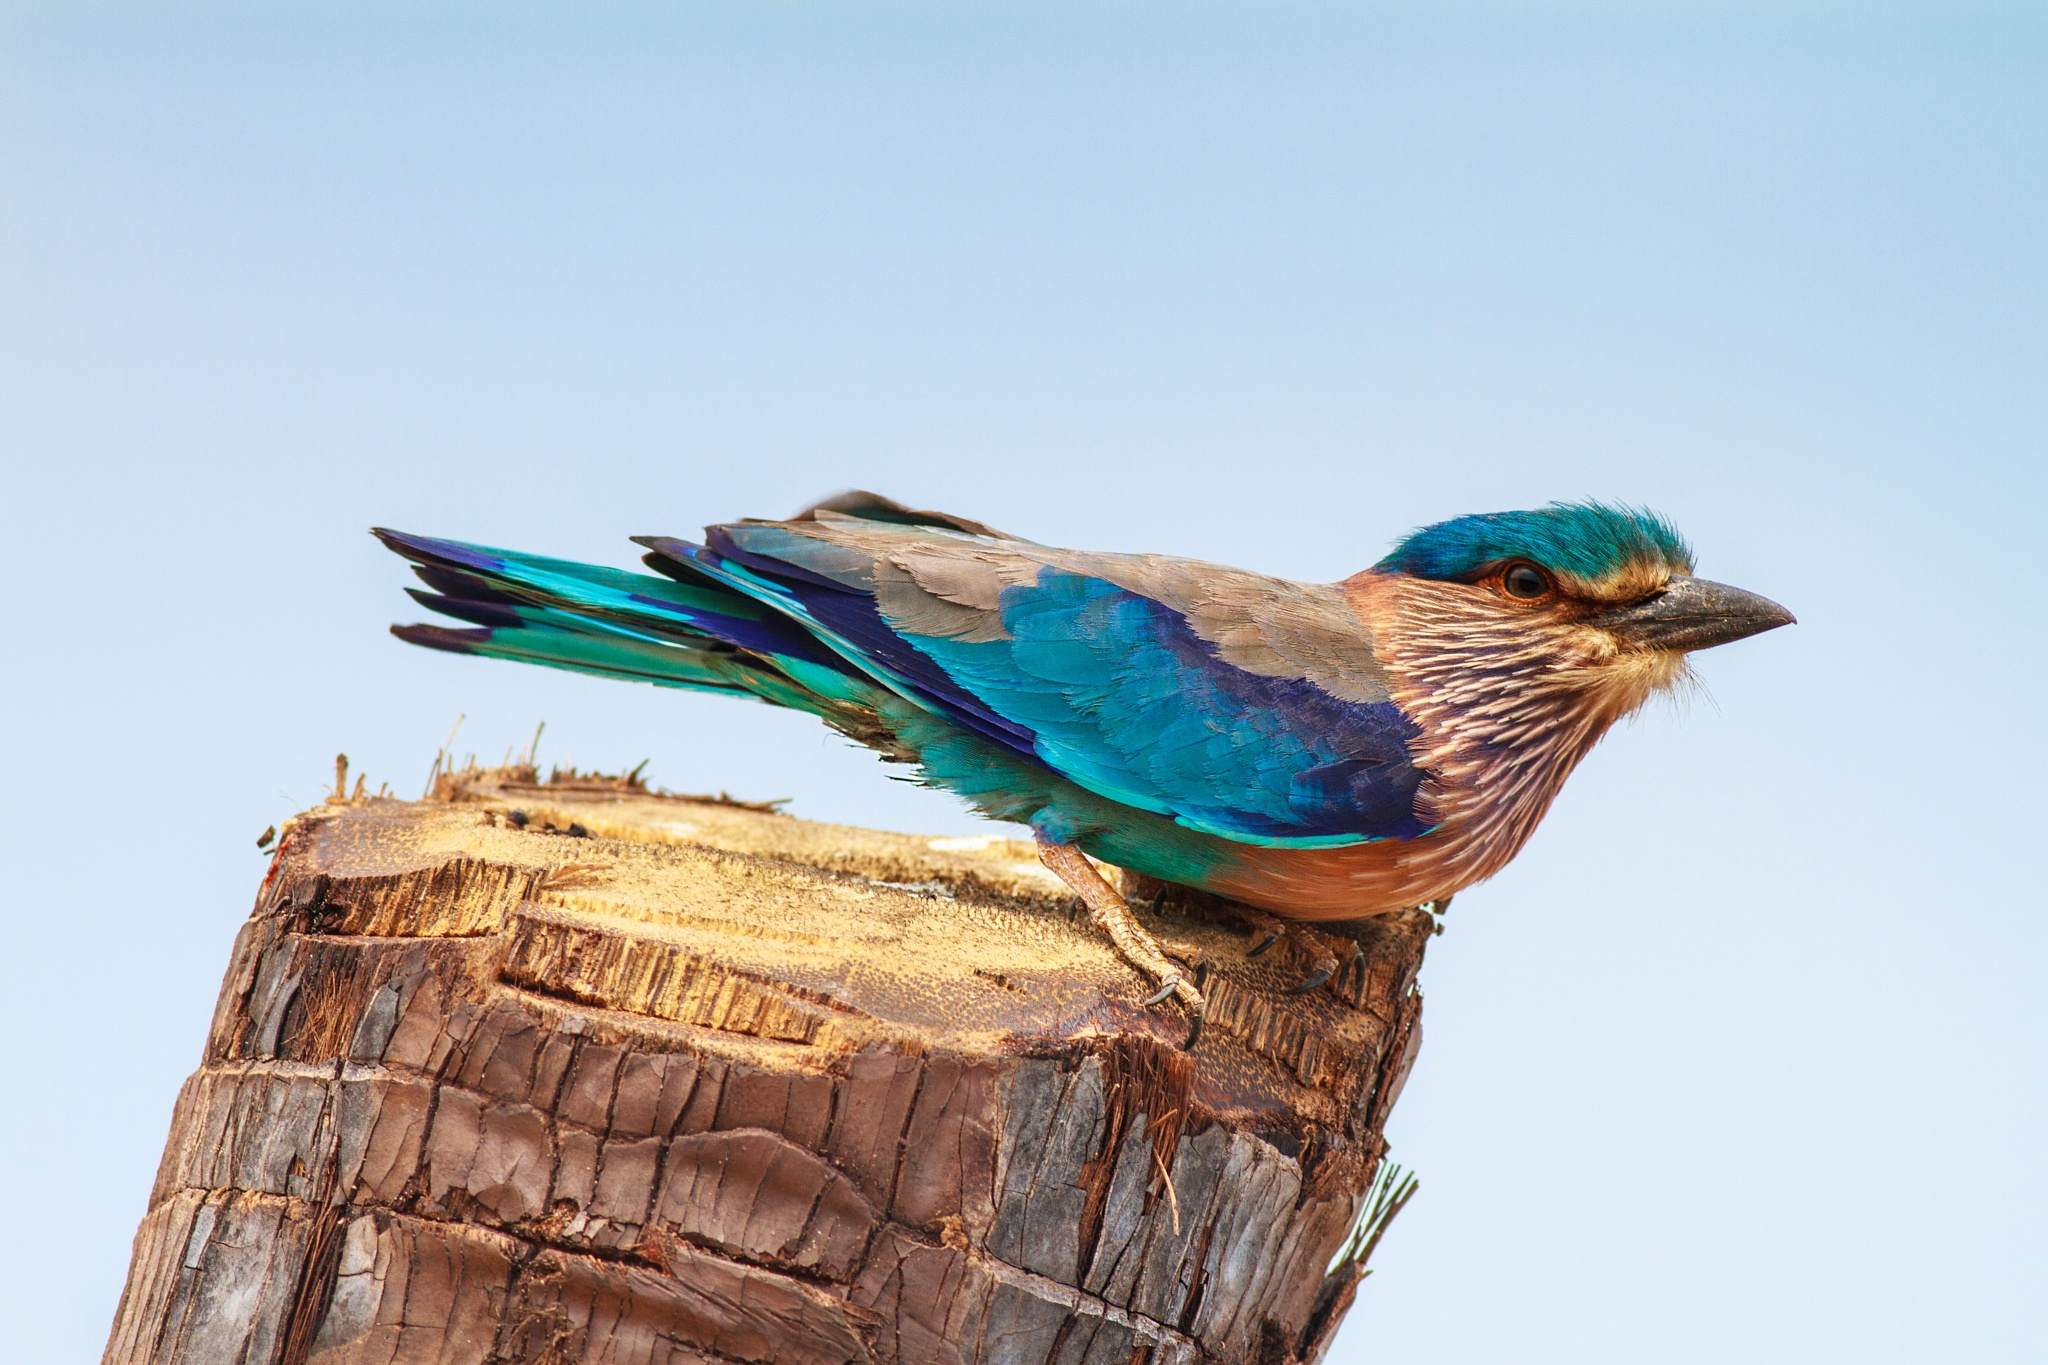 The Indian roller (Coracias benghalensis) by Tony Fernando